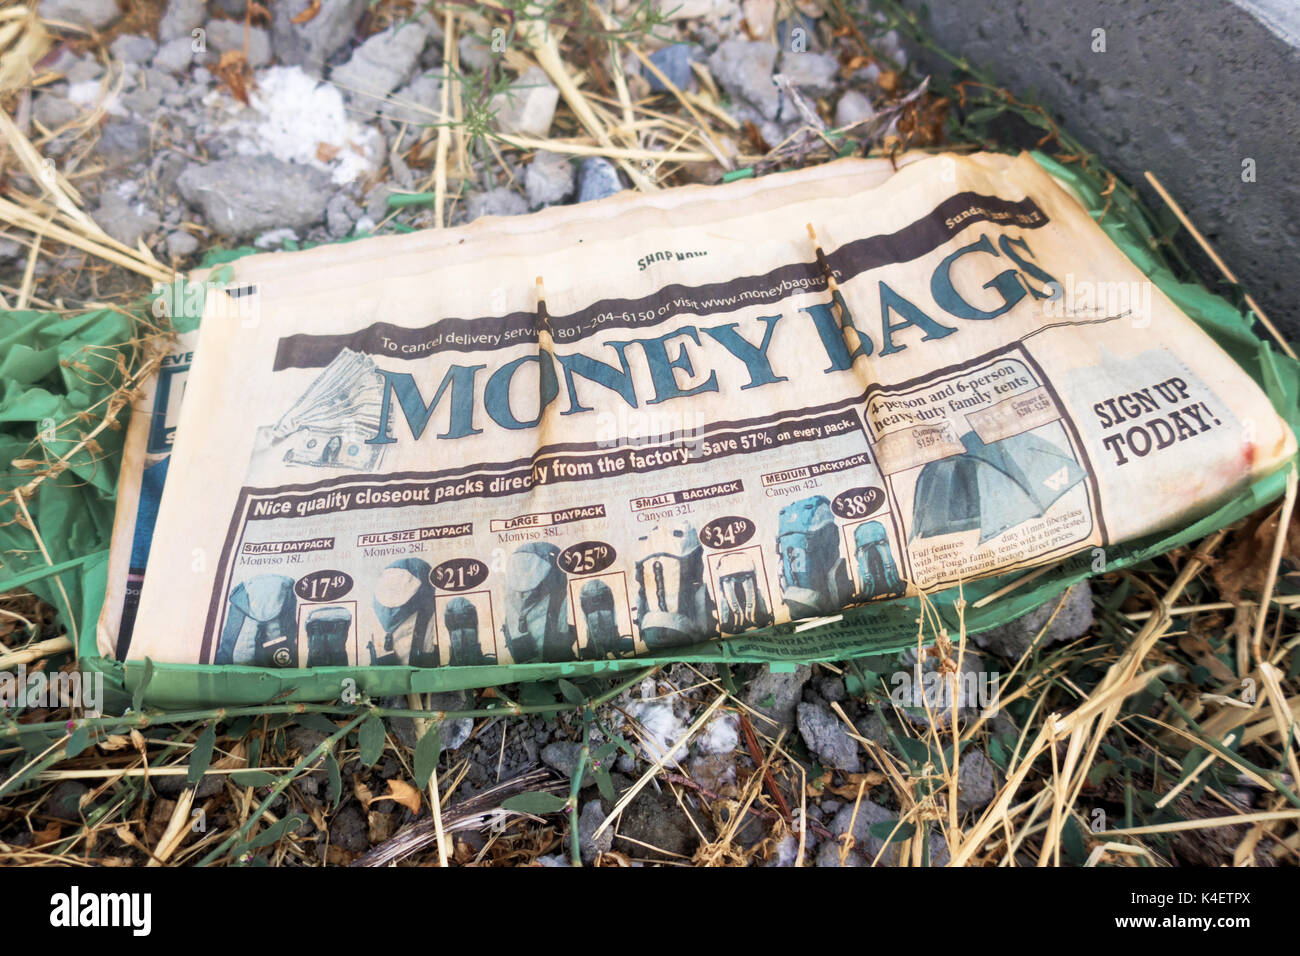 A wet, yellow advertisers newspaper lying neglected on the ground. - Stock Image